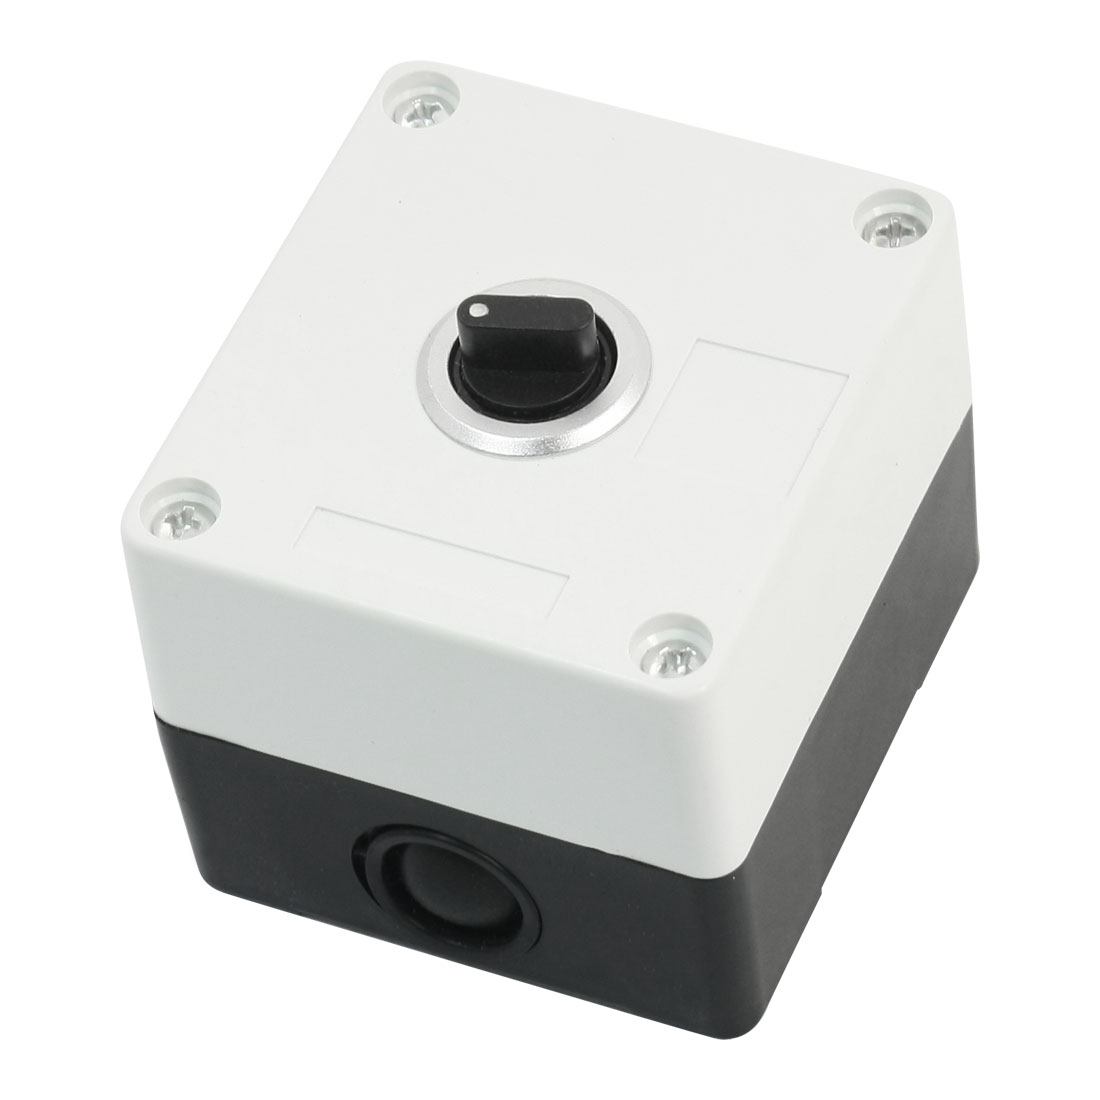 AC 220V 5A Rectangle White Plastic Shell DPDT 2NO 2NC 6-Pin 3-Position Rotary Selector Switch Control Station Box